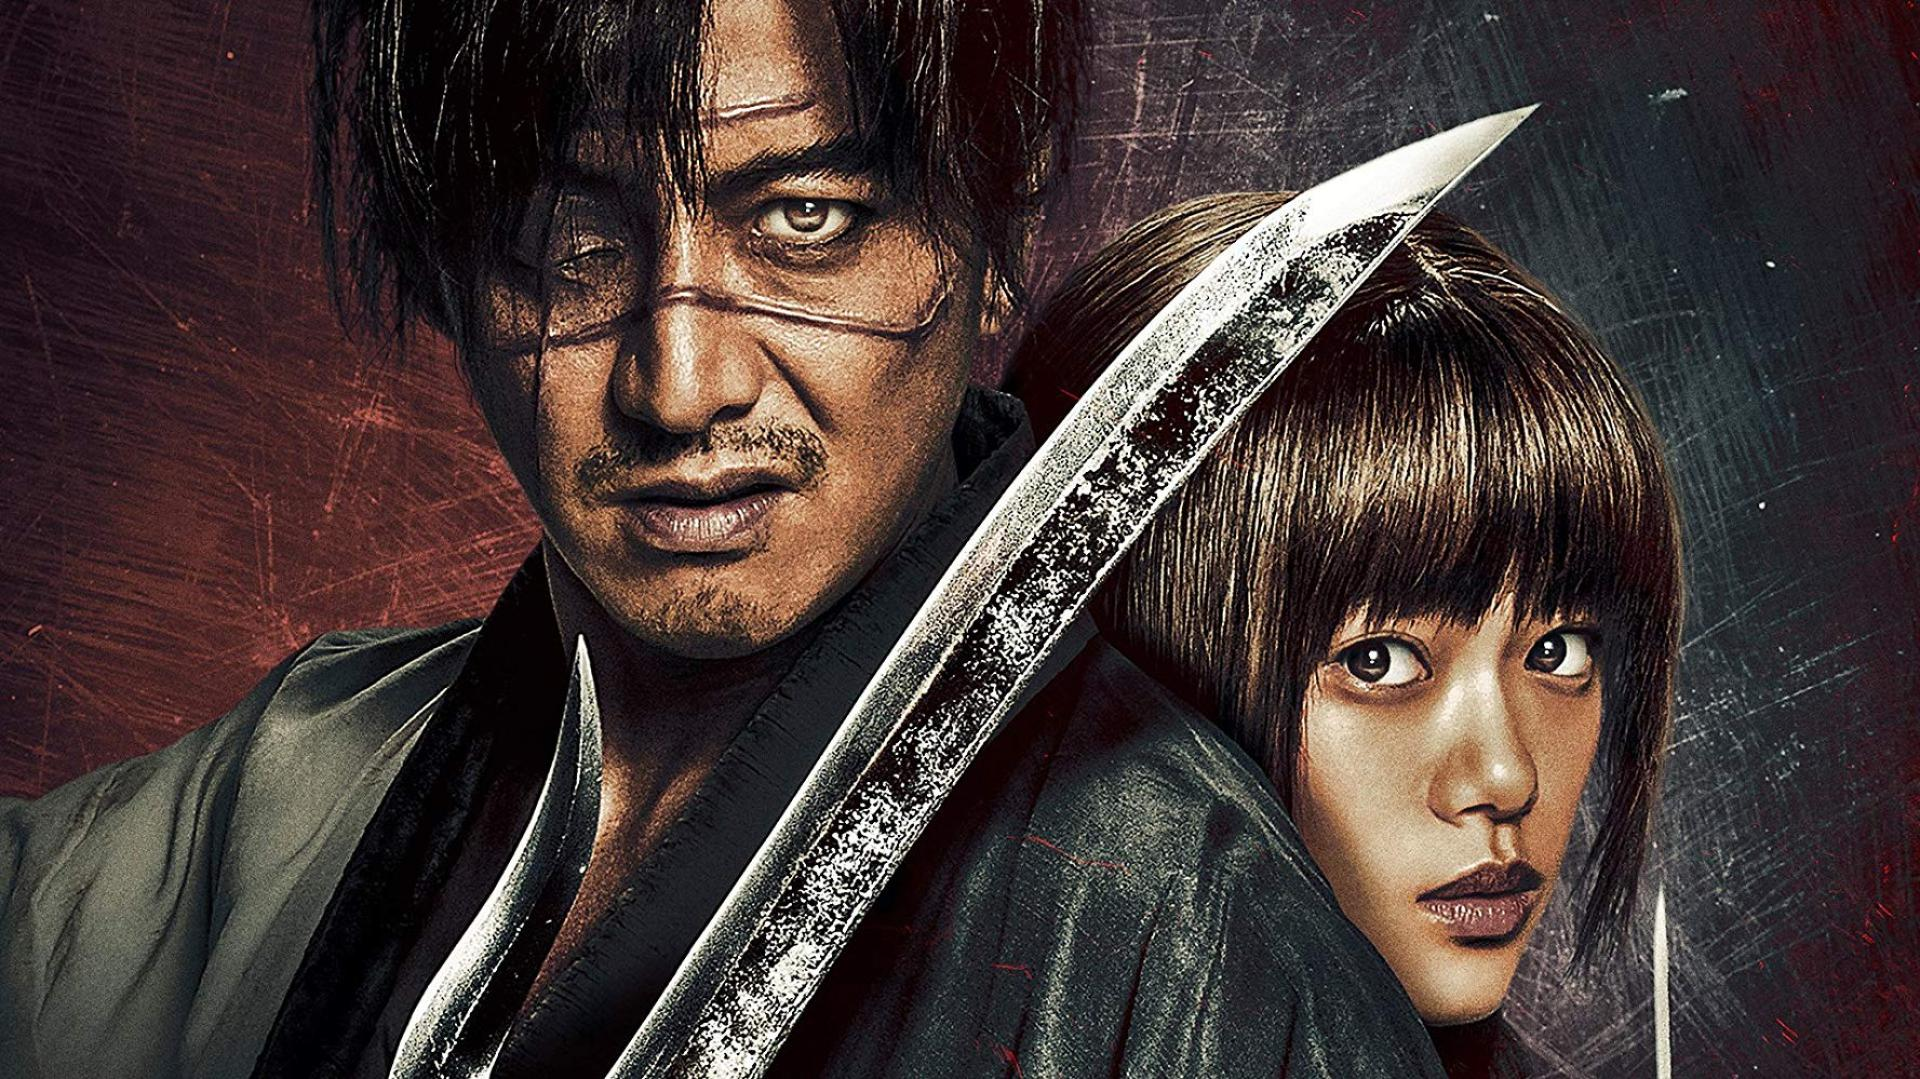 Death Wish Shake XVIII. - Mugen no jûnin / Blade of the Immortal (2017)